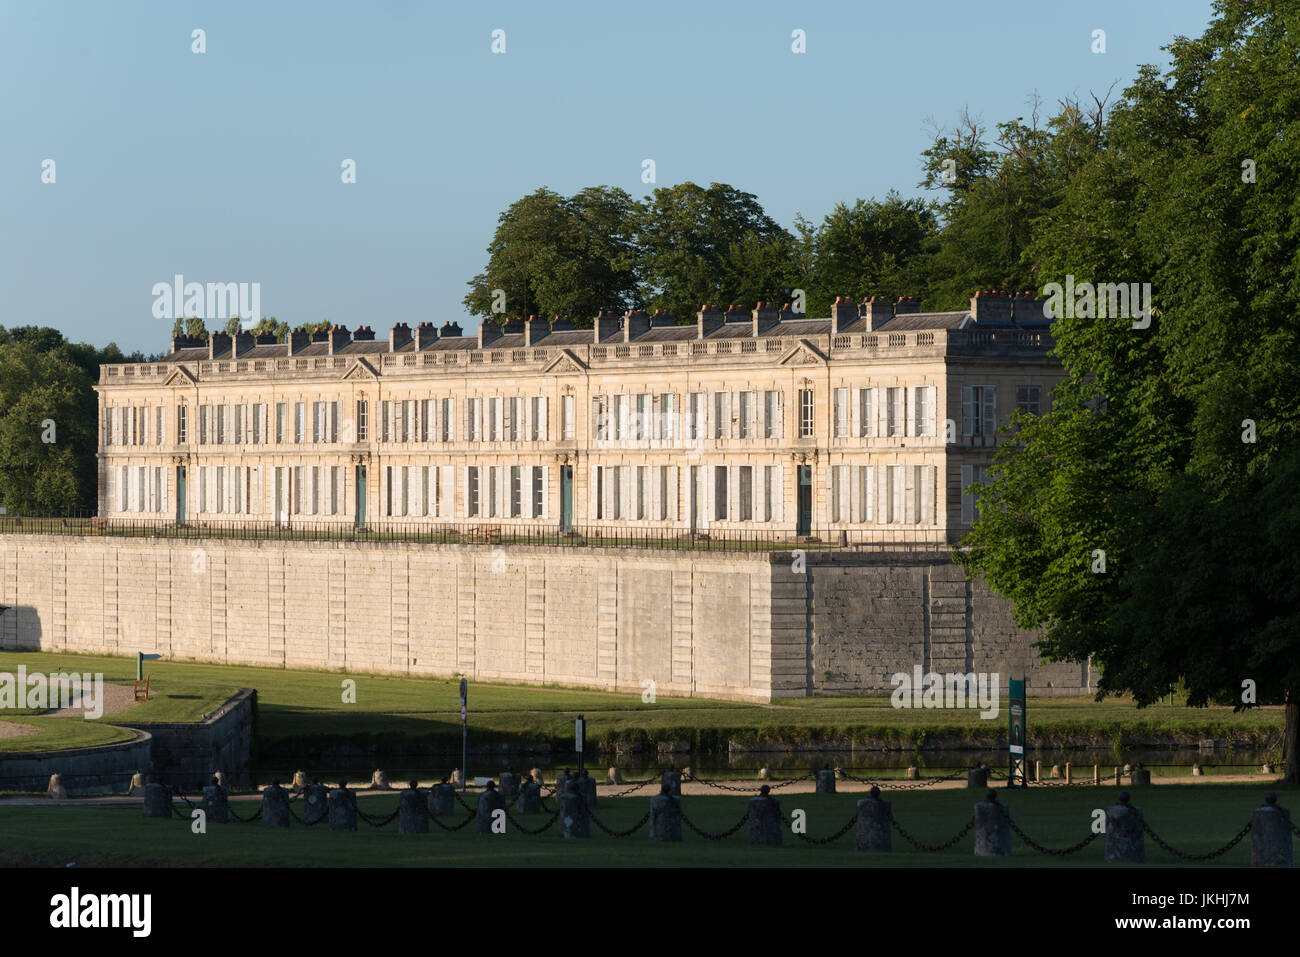 Chateau de Chantilly park and garden with stables in the north of Paris, France - Stock Image